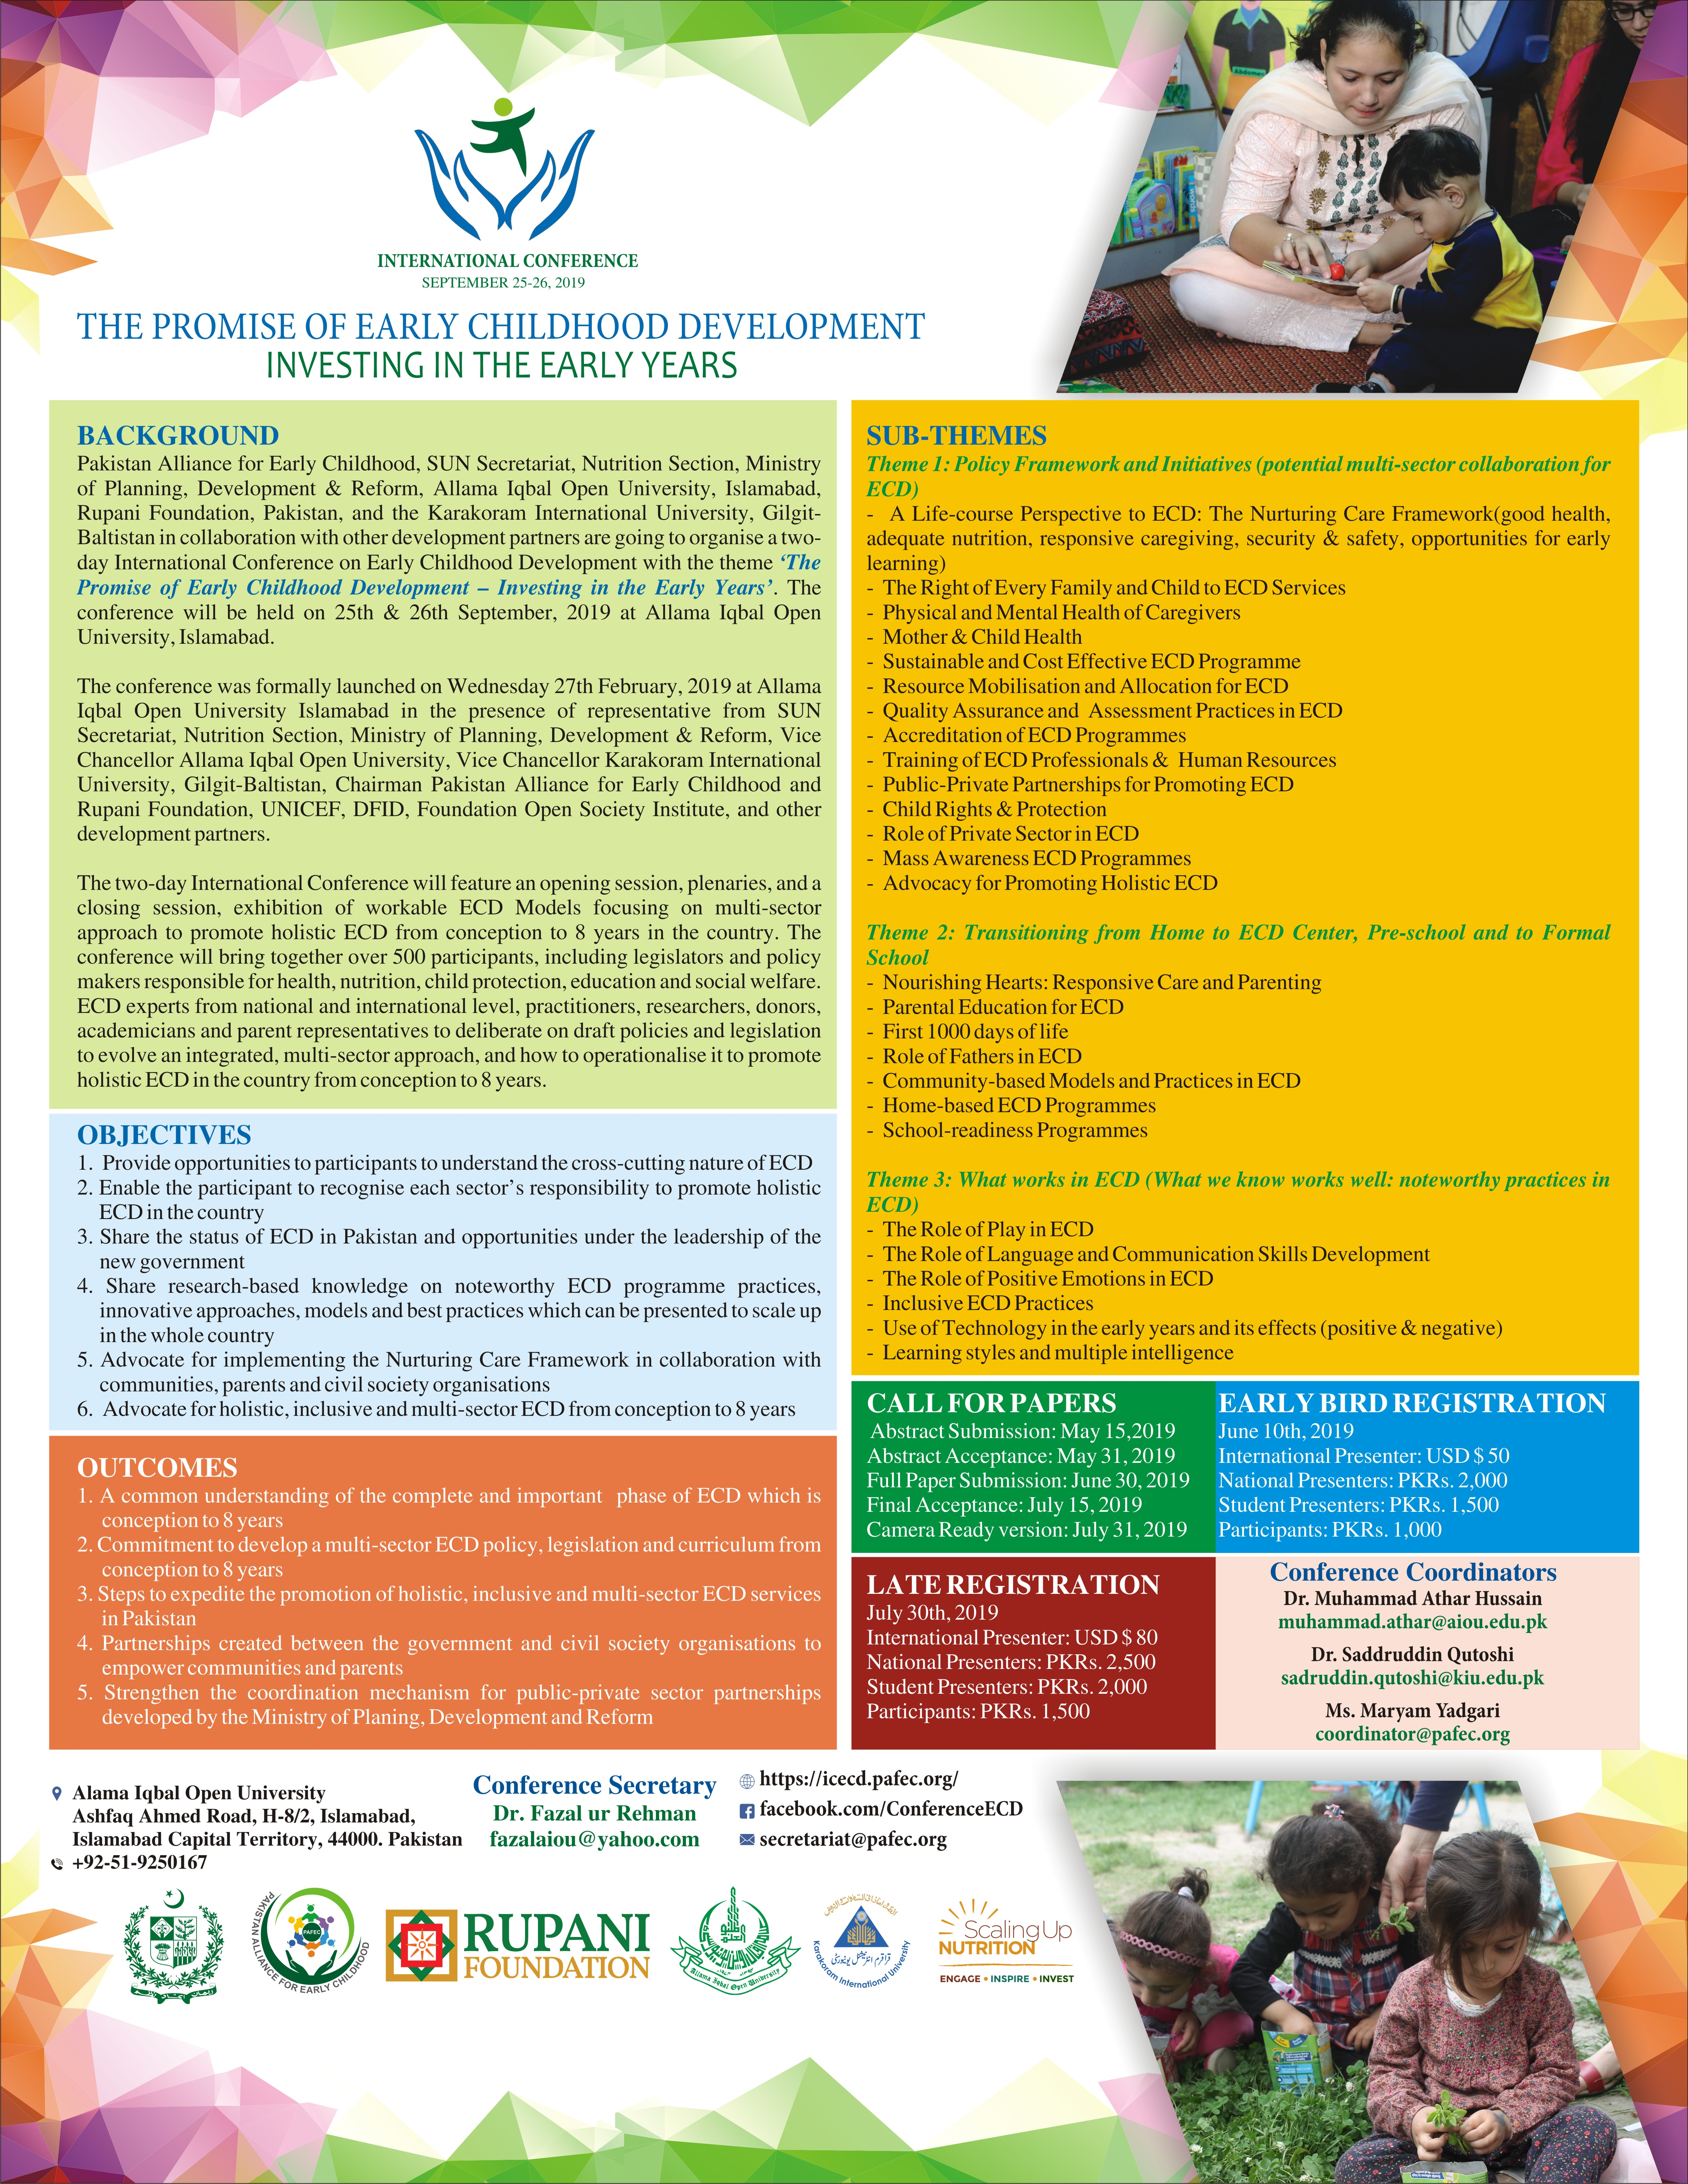 Revises Brochure of International Conference on Early